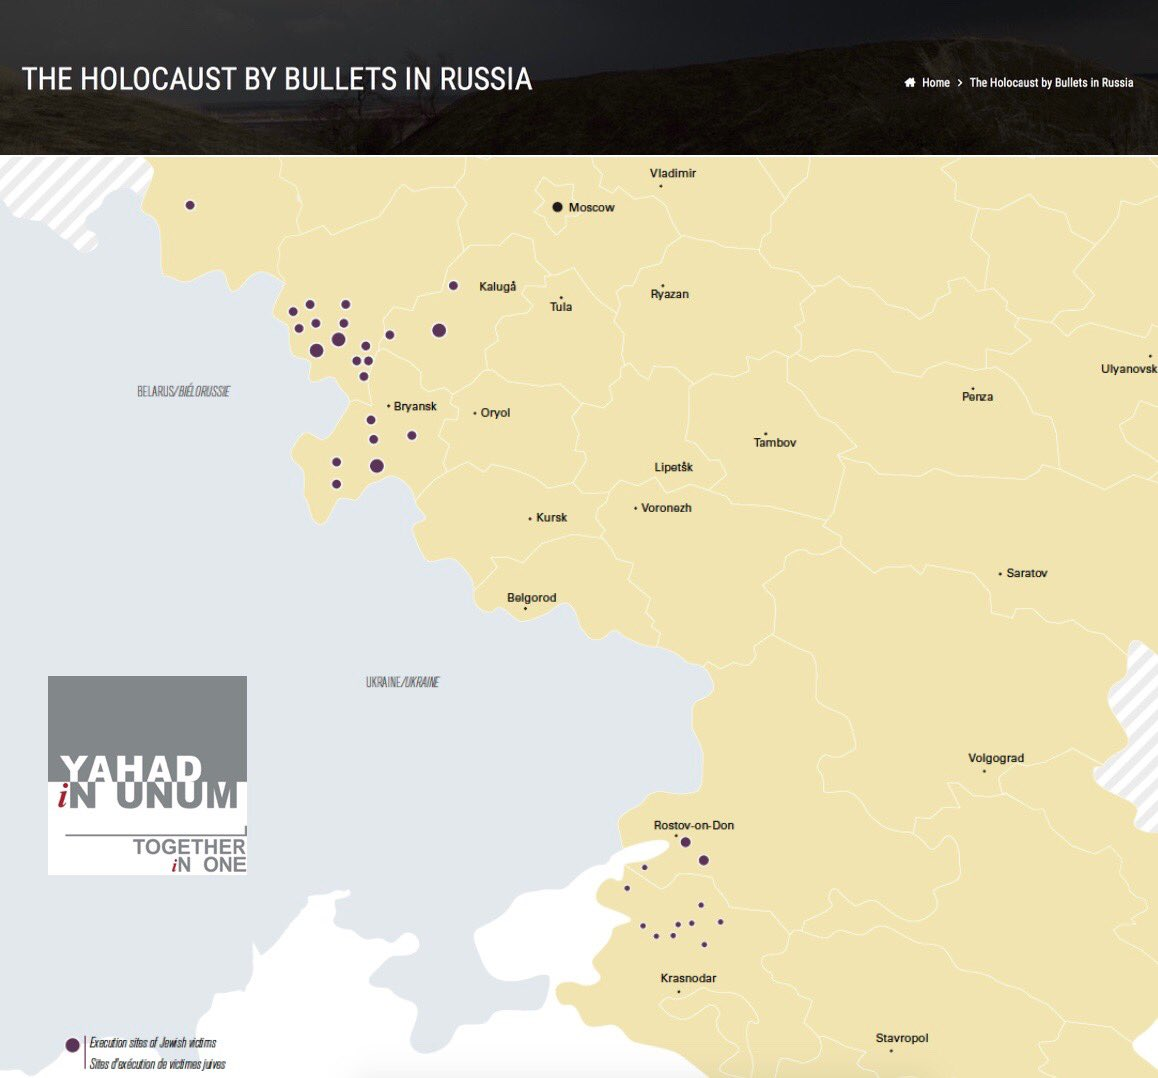 Yahad-In Unum research teams have conducted 24 research trips to Russia, 879 witnesses have been interviewed in the country and 316 execution sites have been identified.  https://www.yahadinunum.org/the-holocaust-by-bullets-in-russia/…  #shoah #InEvidence #witness